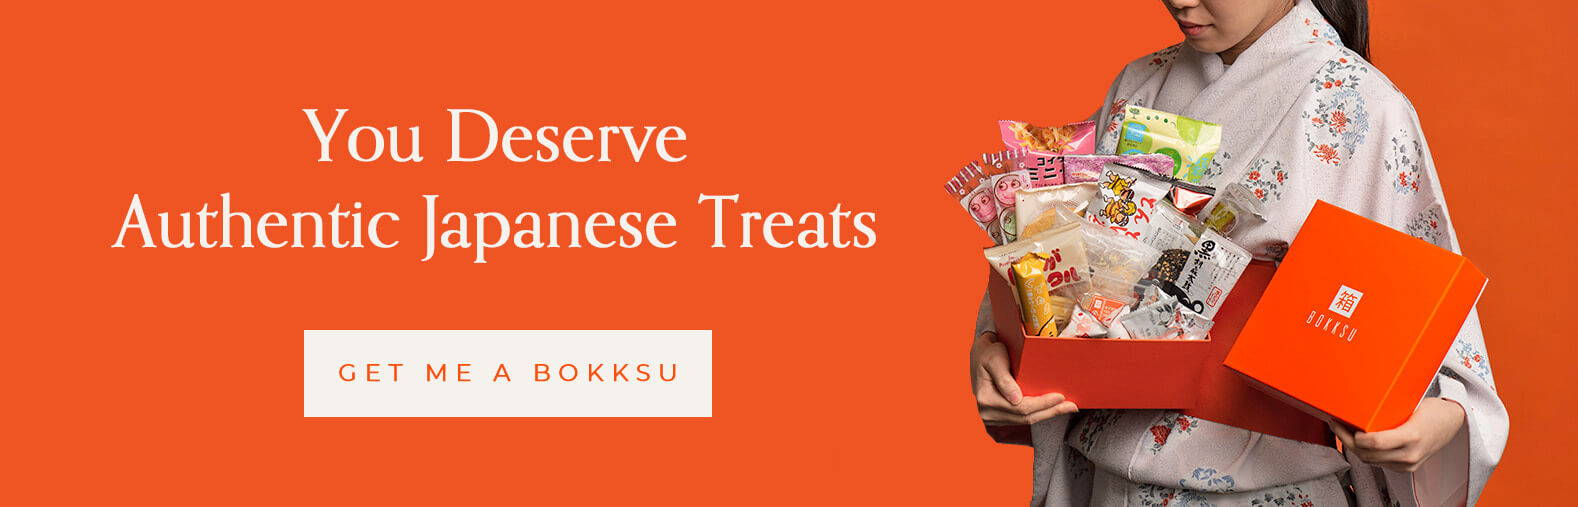 join Bokksu Japanese snacks subscription box service today